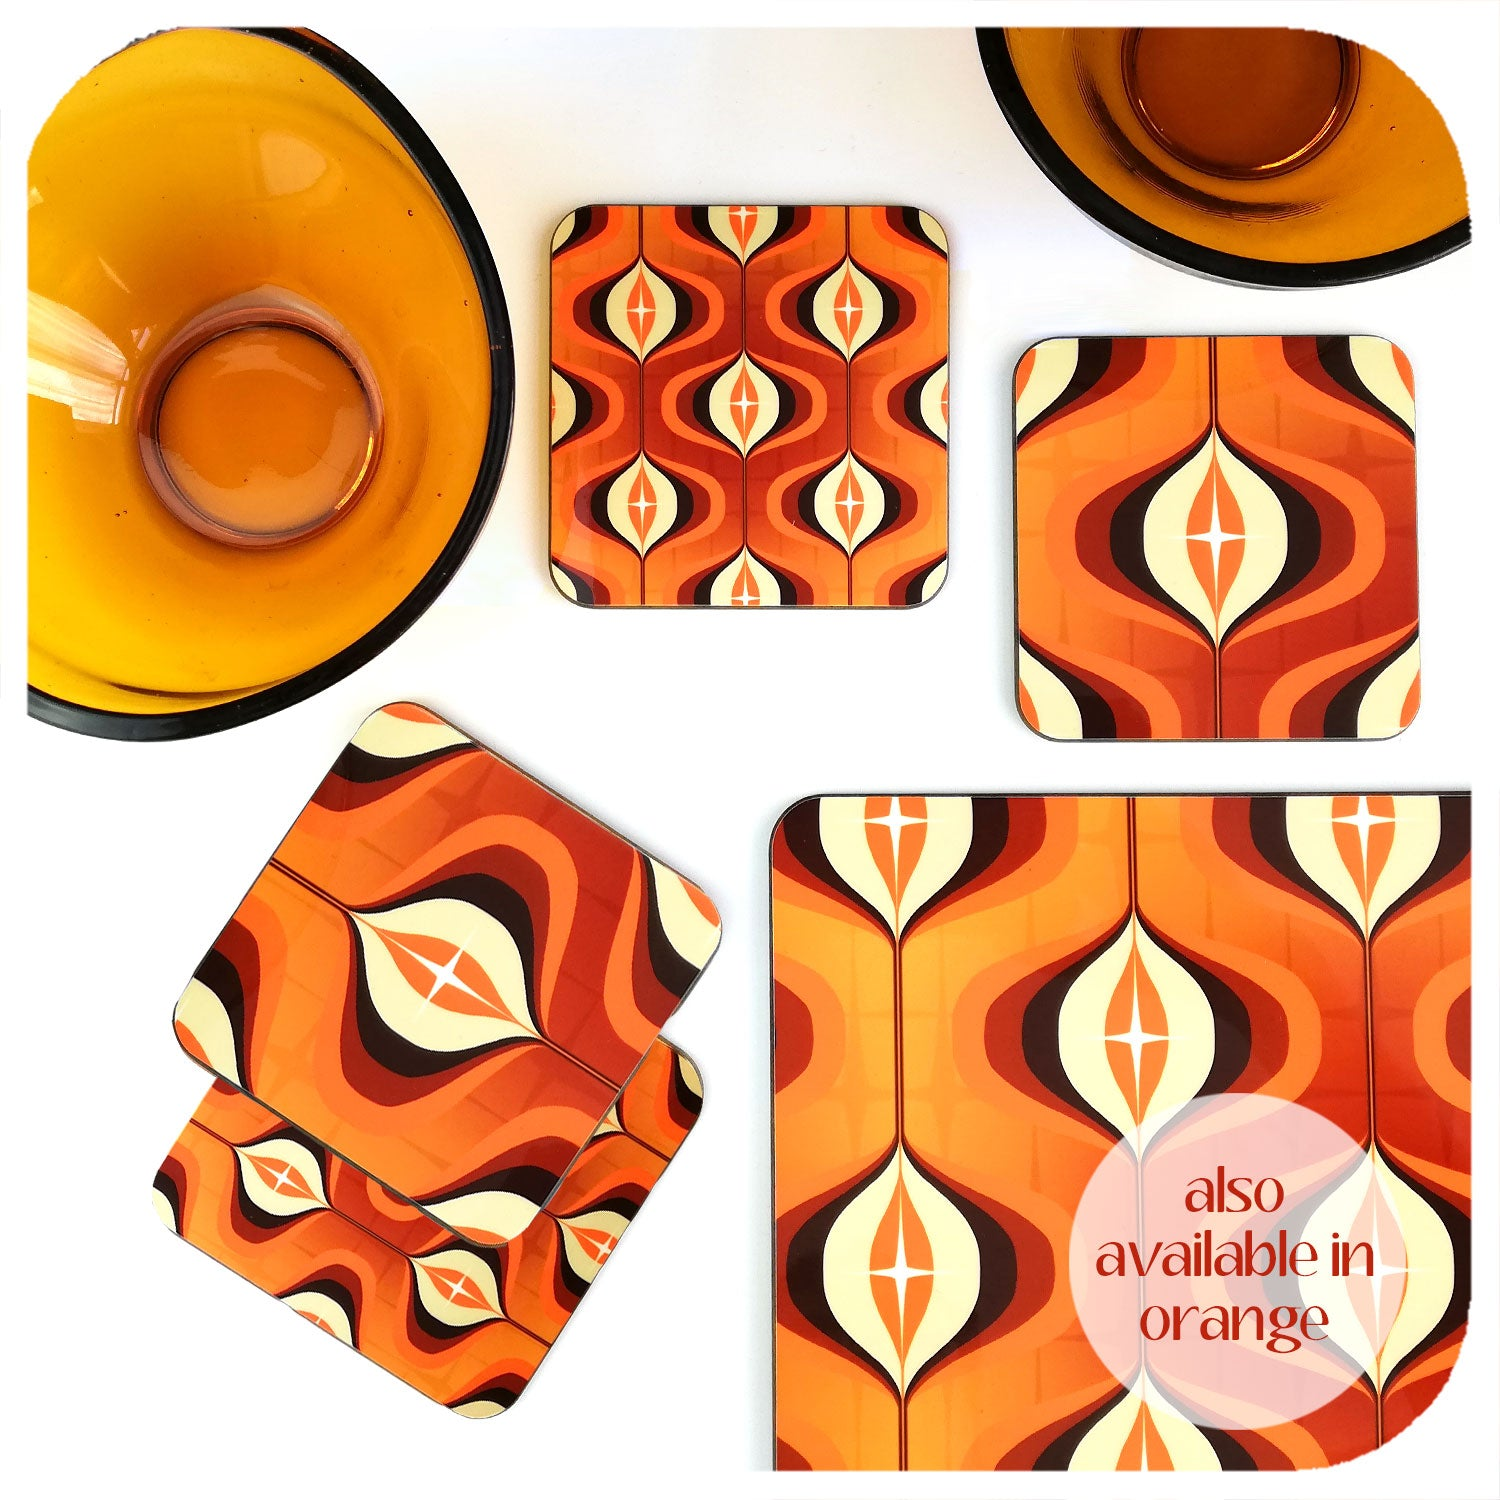 70s style Op Art Placemat & matching Coasters in Orange | The Inkabilly Emporium